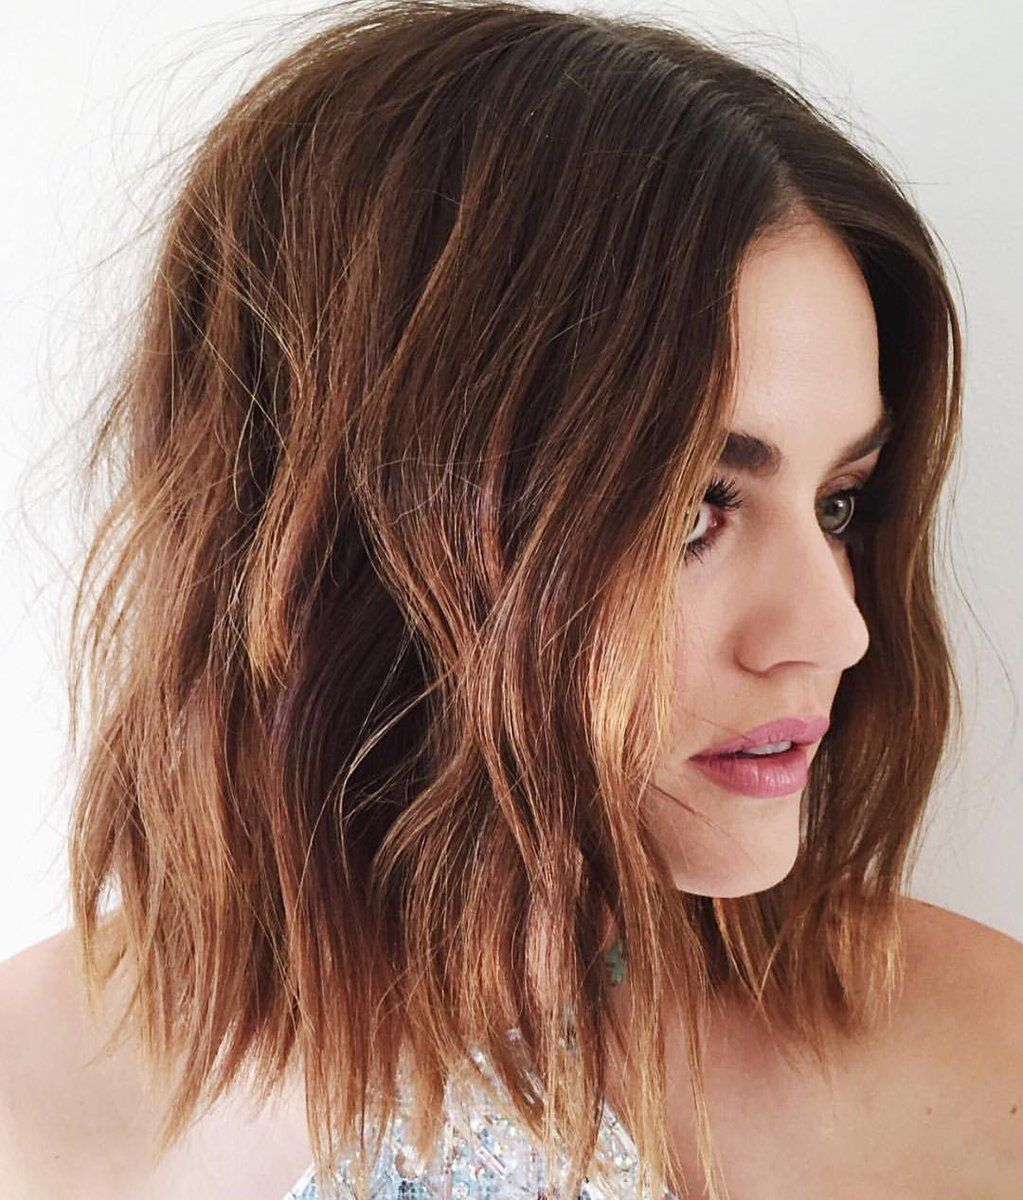 Lucy Haleher Short Hair Is Cute Lucy Hale Pinterest Lucy